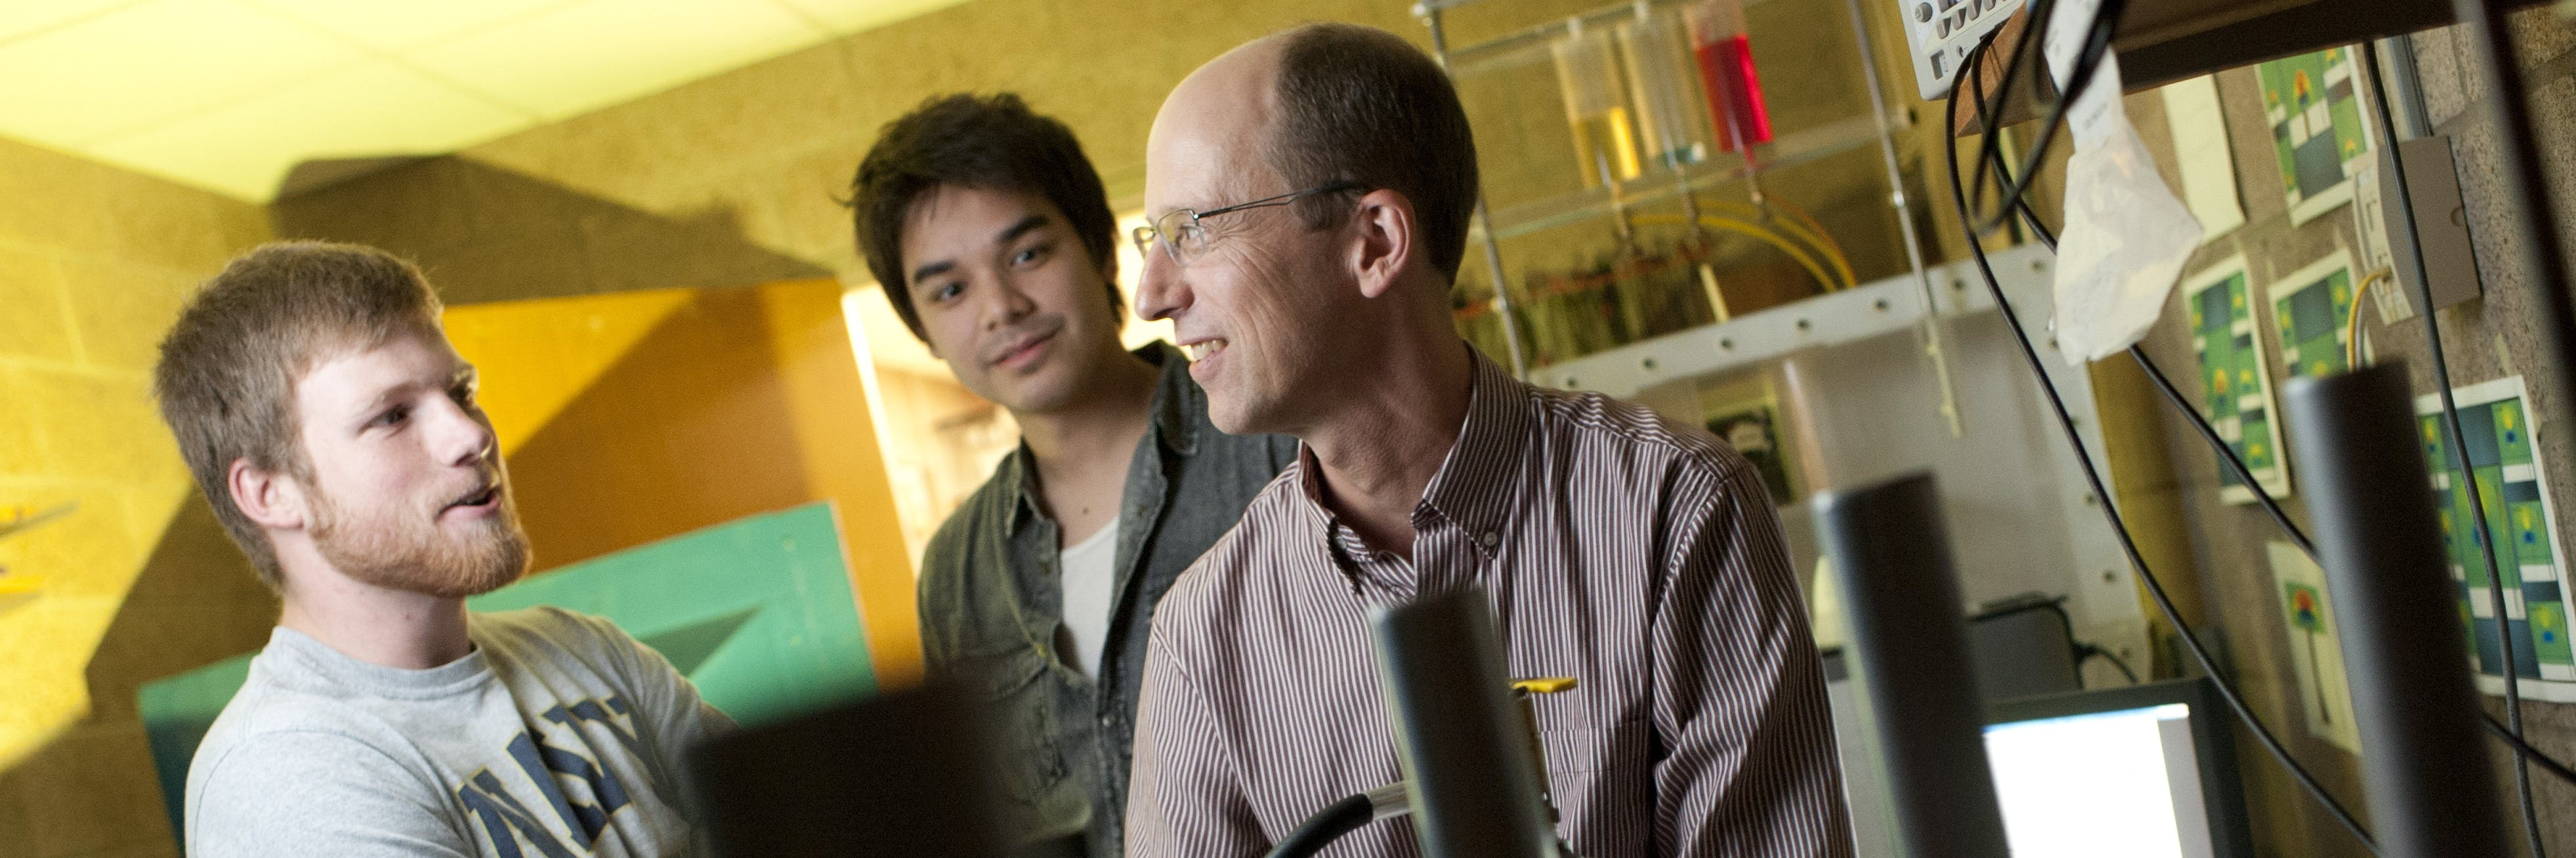 Student and a professor in the lab